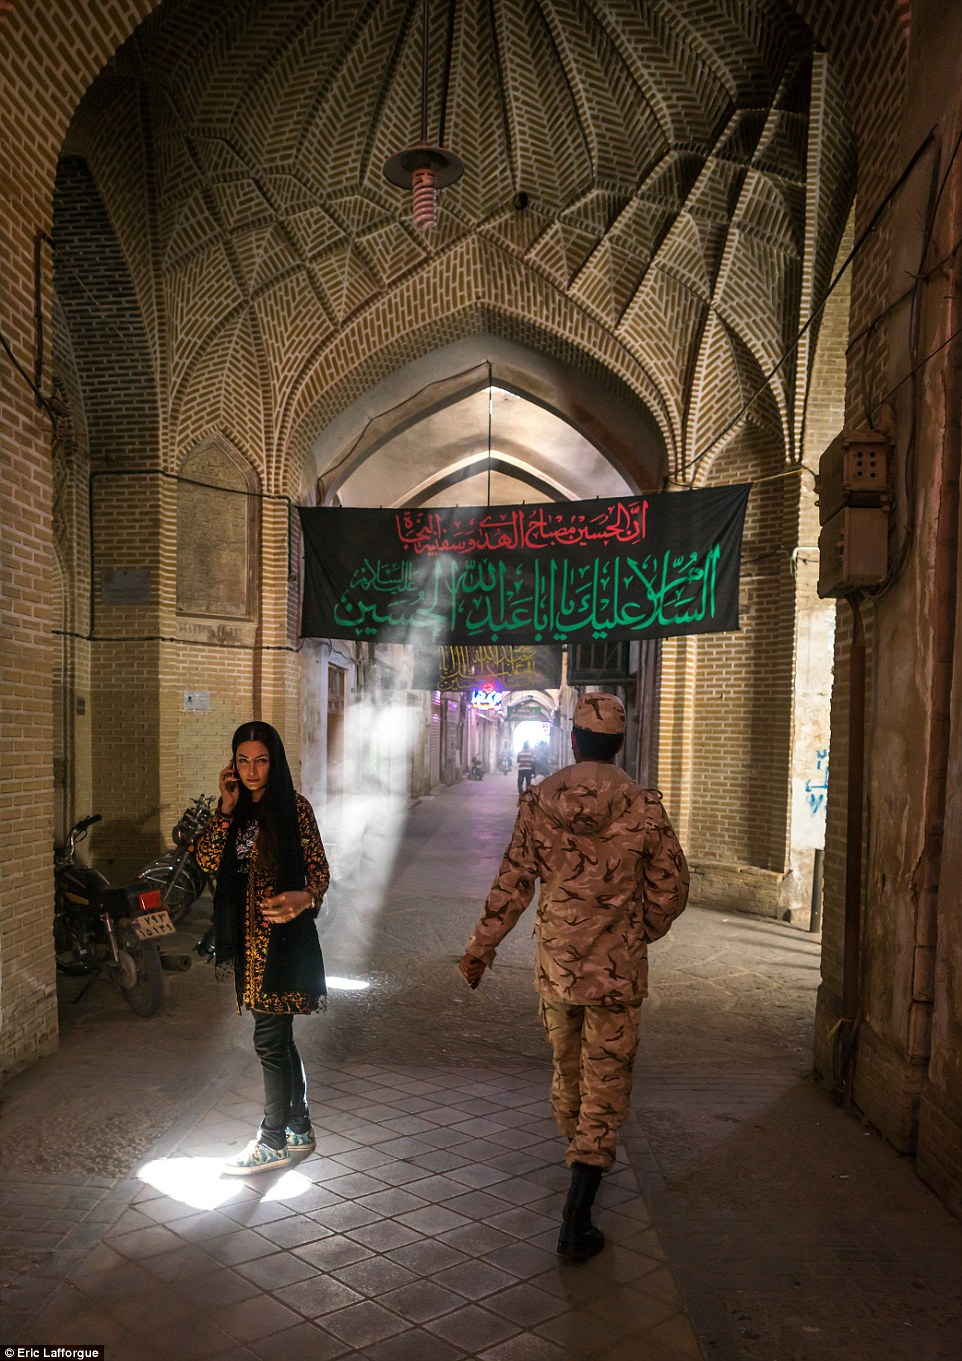 A woman and a soldier pass by each other in the bazaar in Yard, which is one of the oldest historical places in the central Iranian town